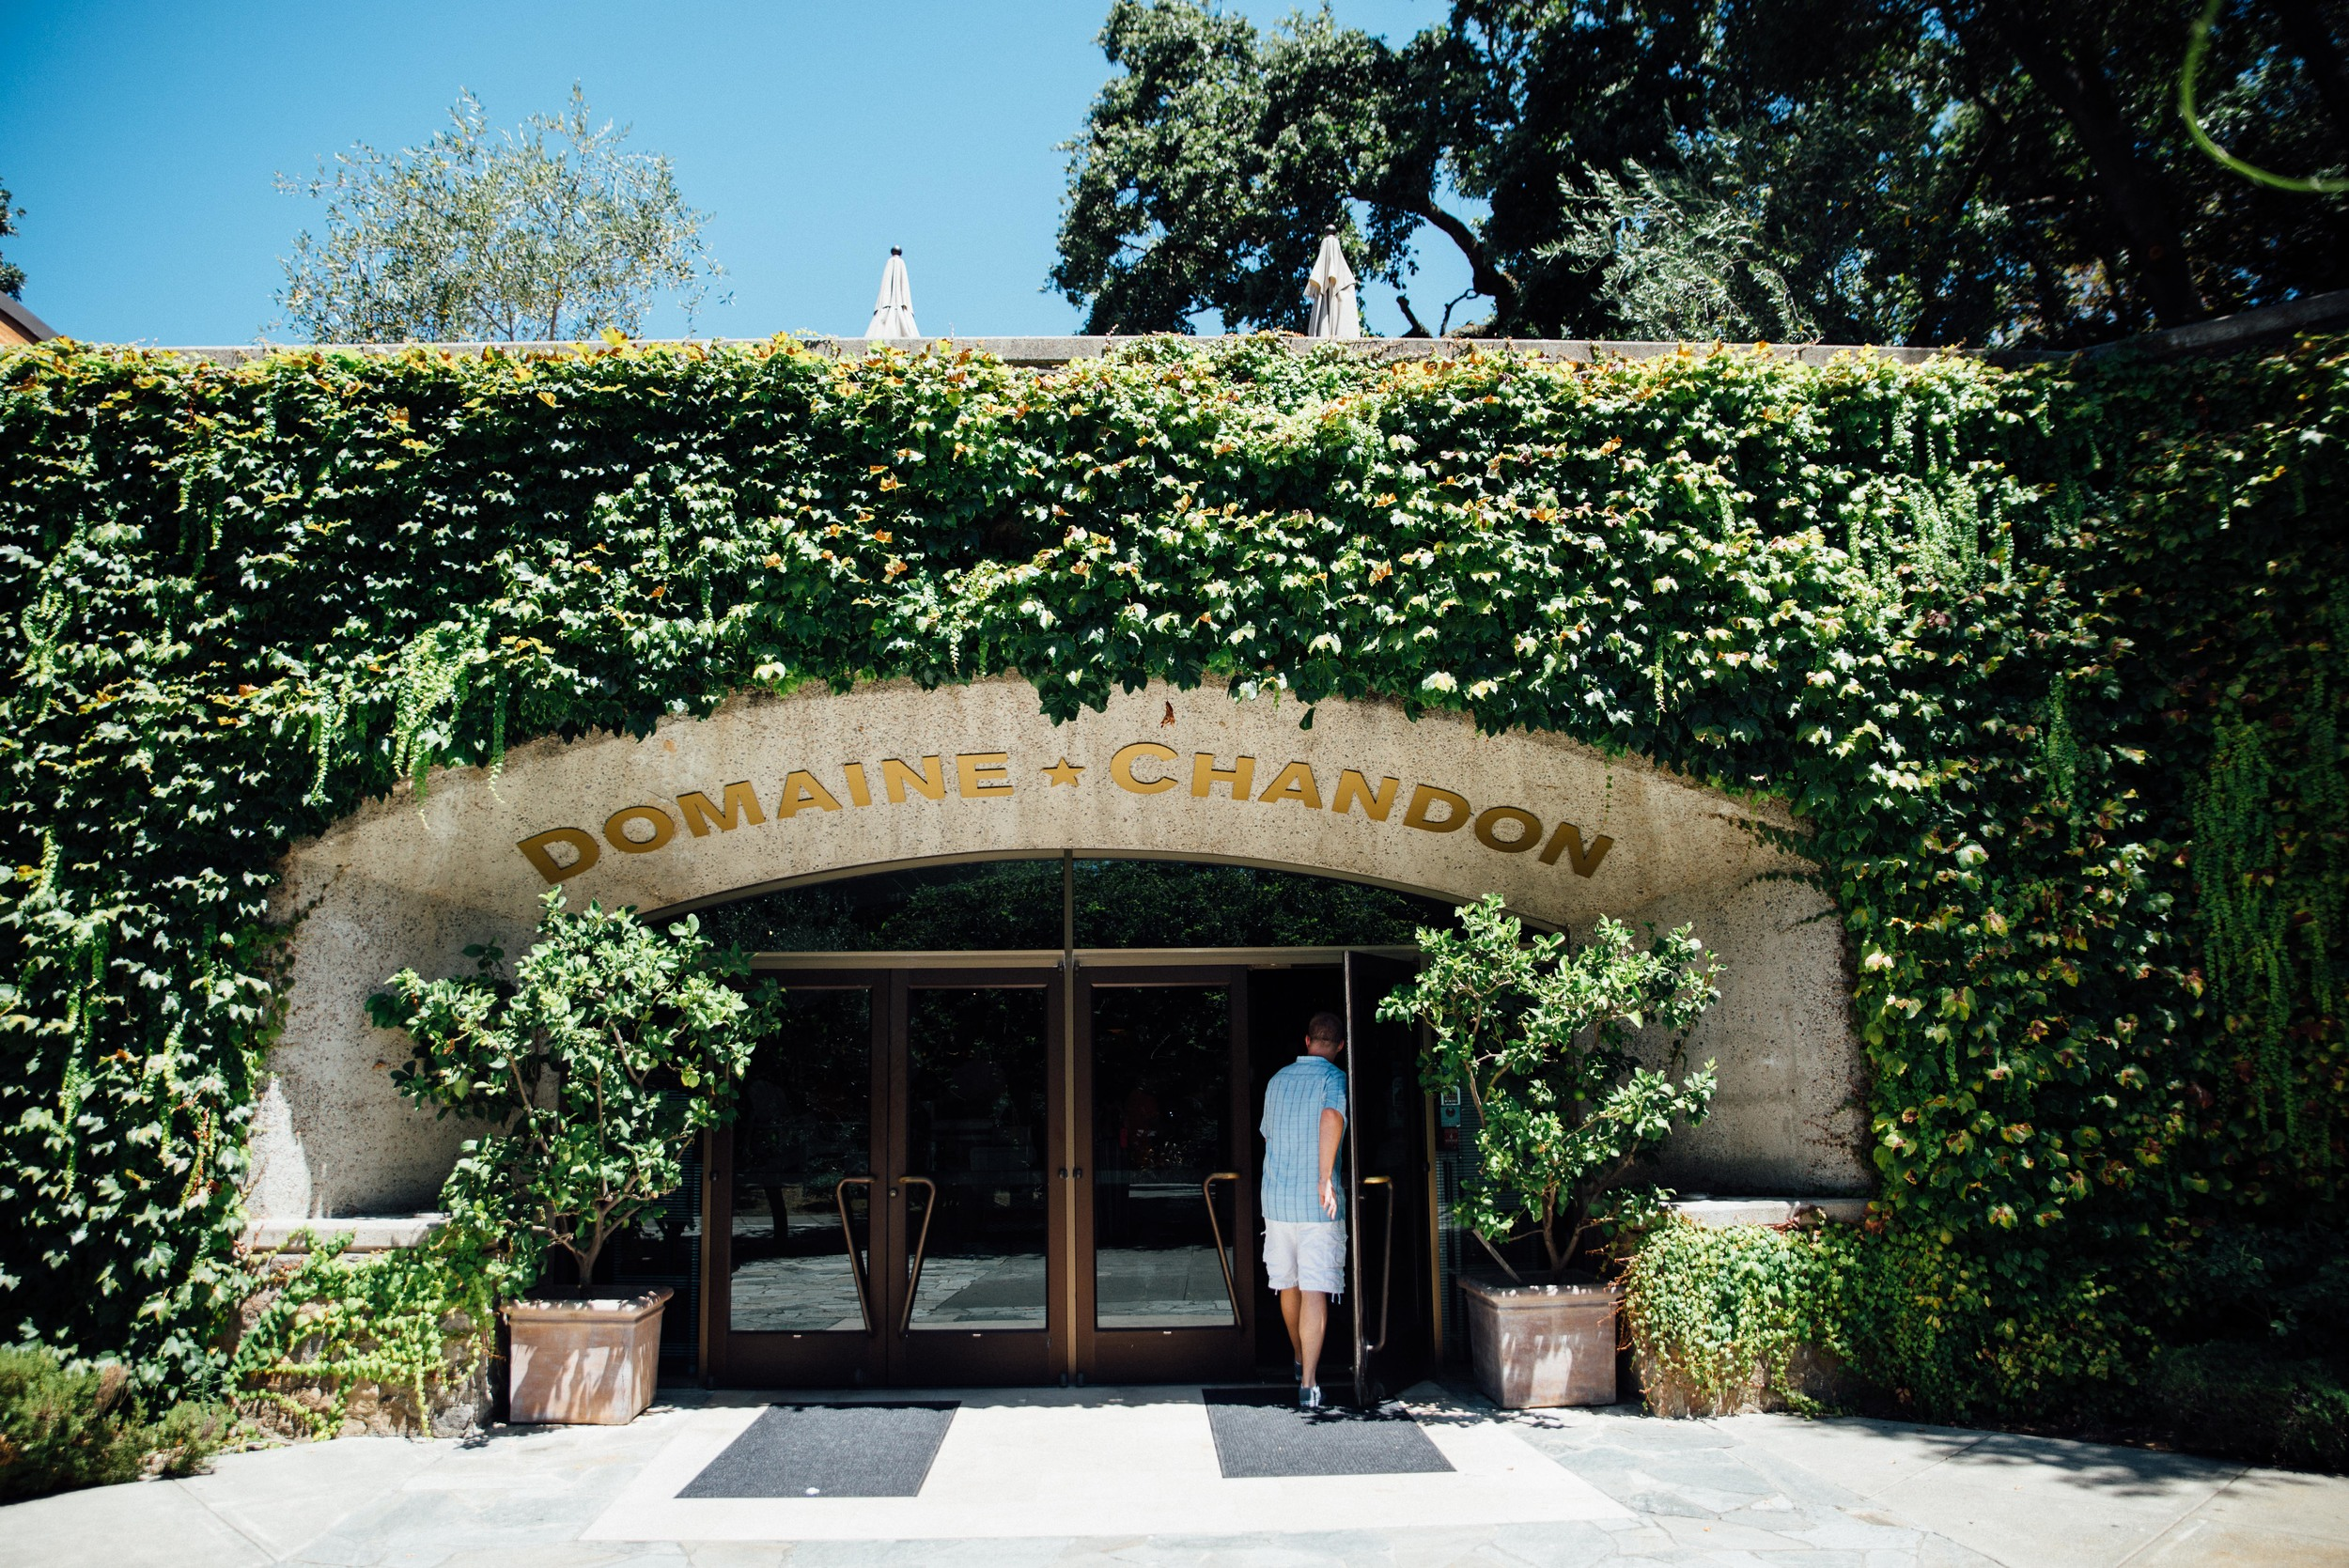 Domaine Chandon, Napa, California